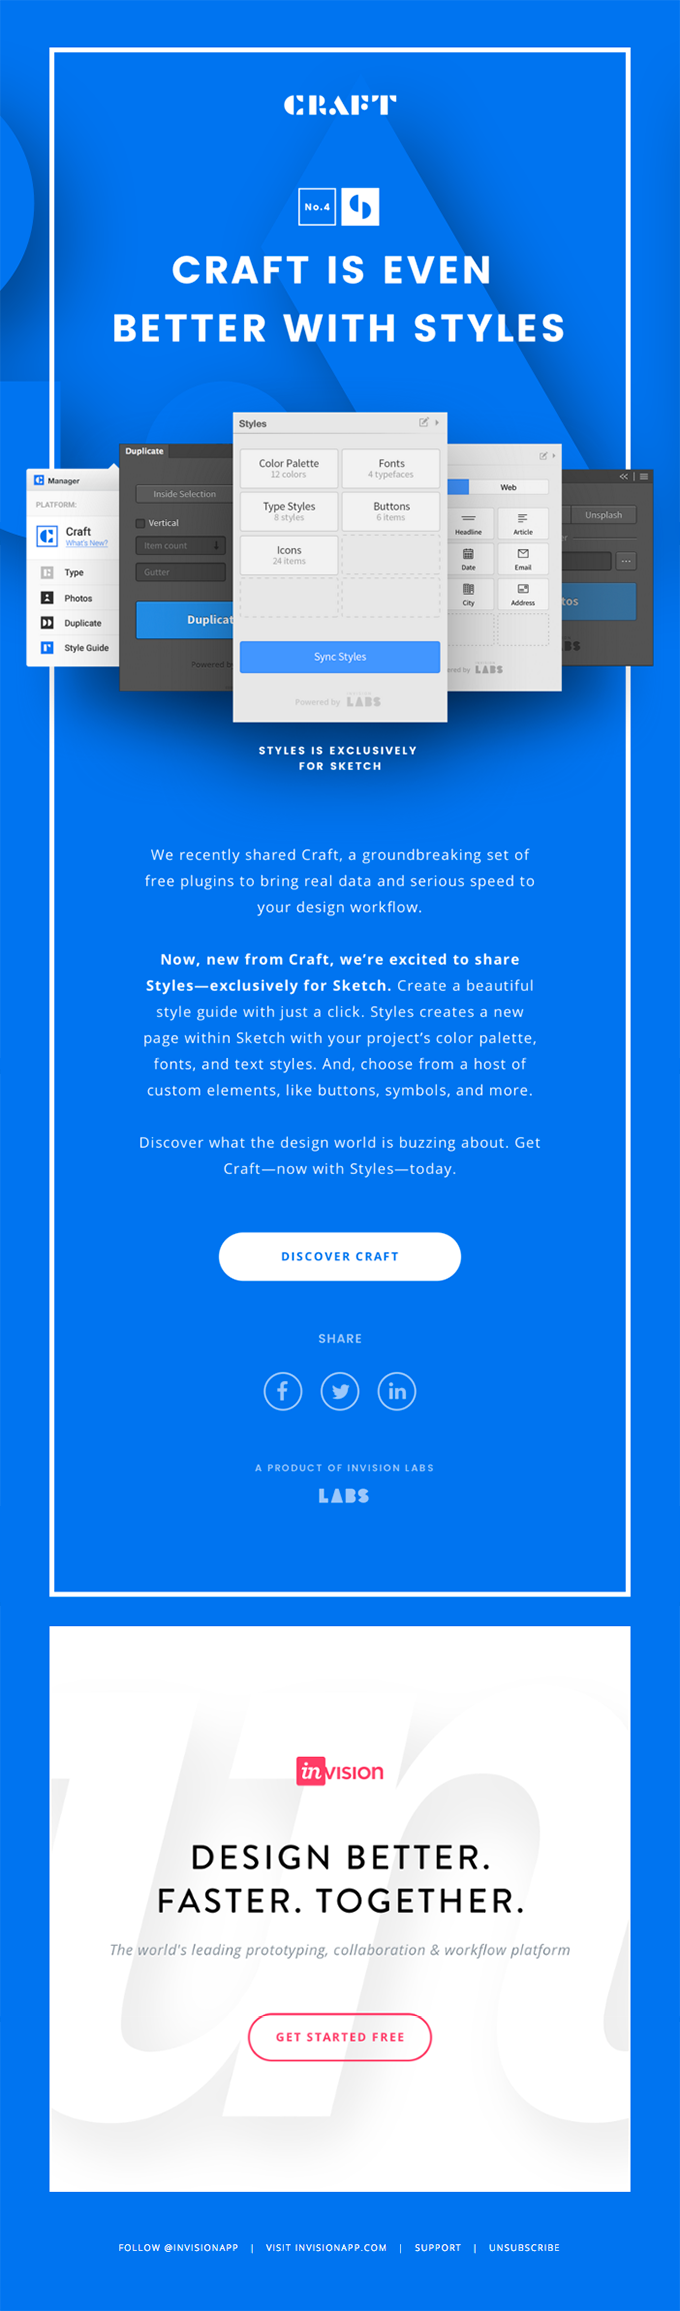 craft-email-example.png